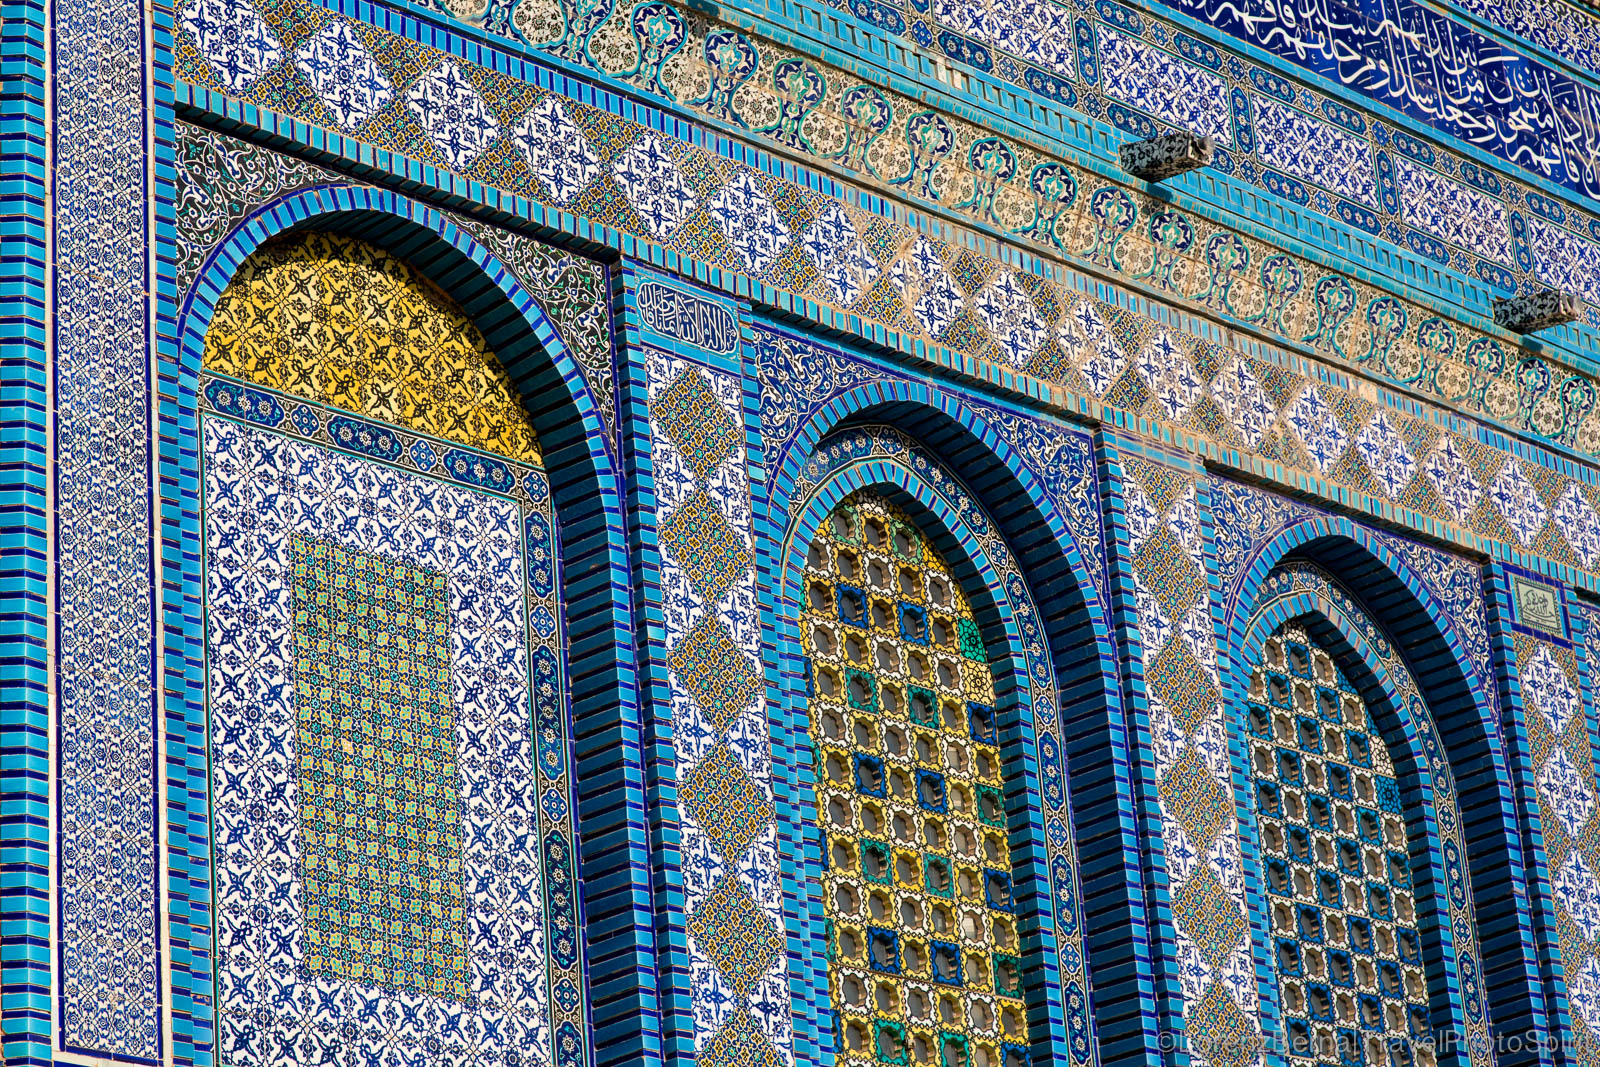 Details on the mosaic walls of the Dome of the Rock Mosque, Jerusalem, Israel.